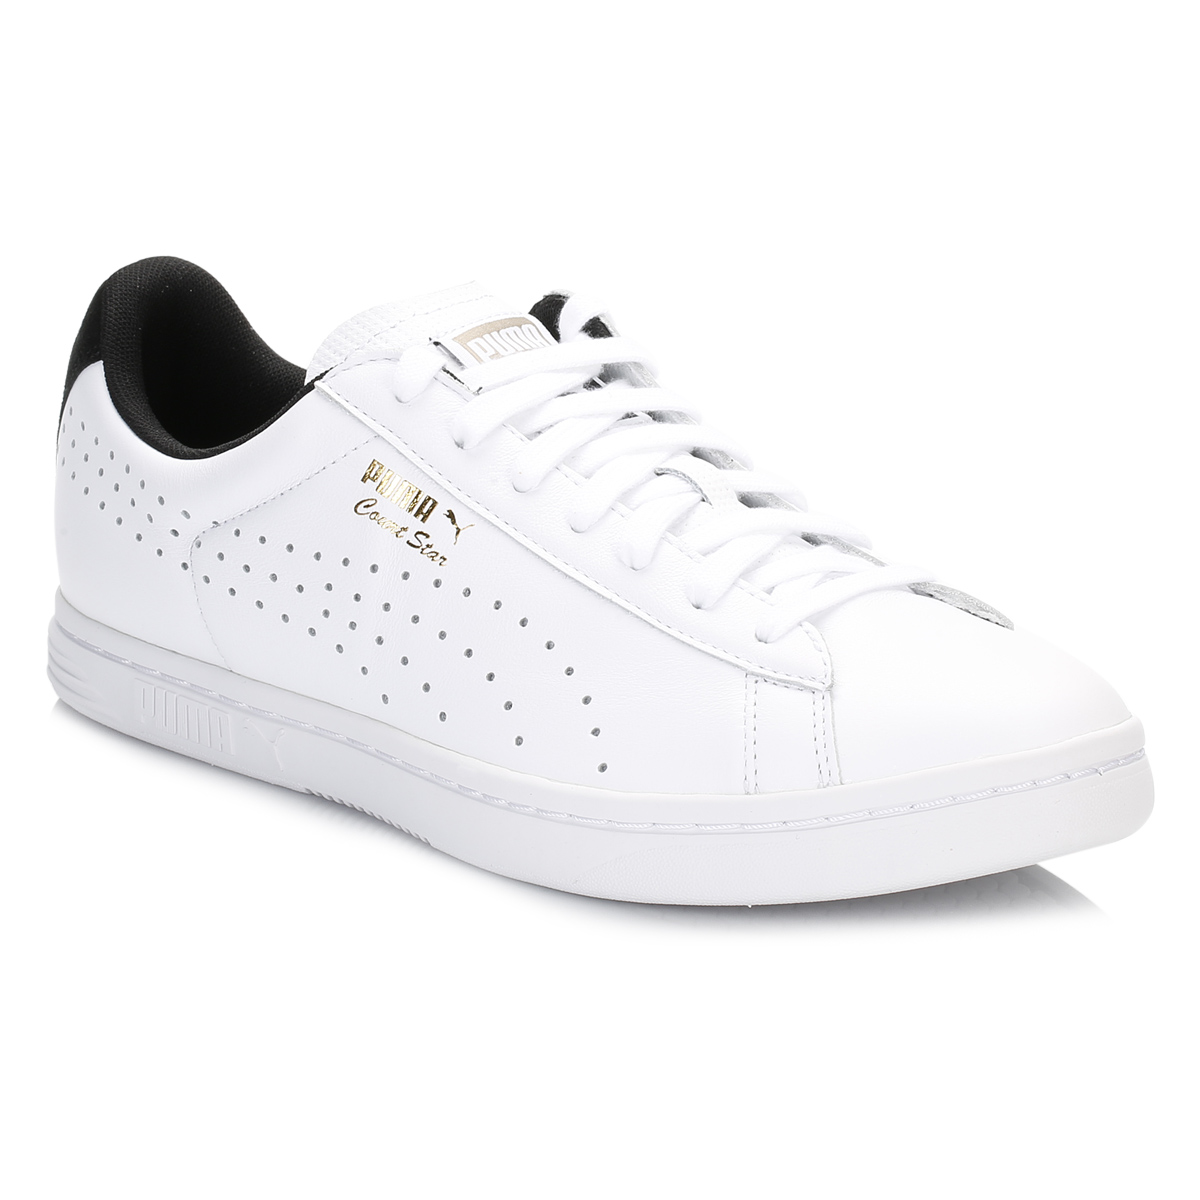 mens white court trainers leather casual sport